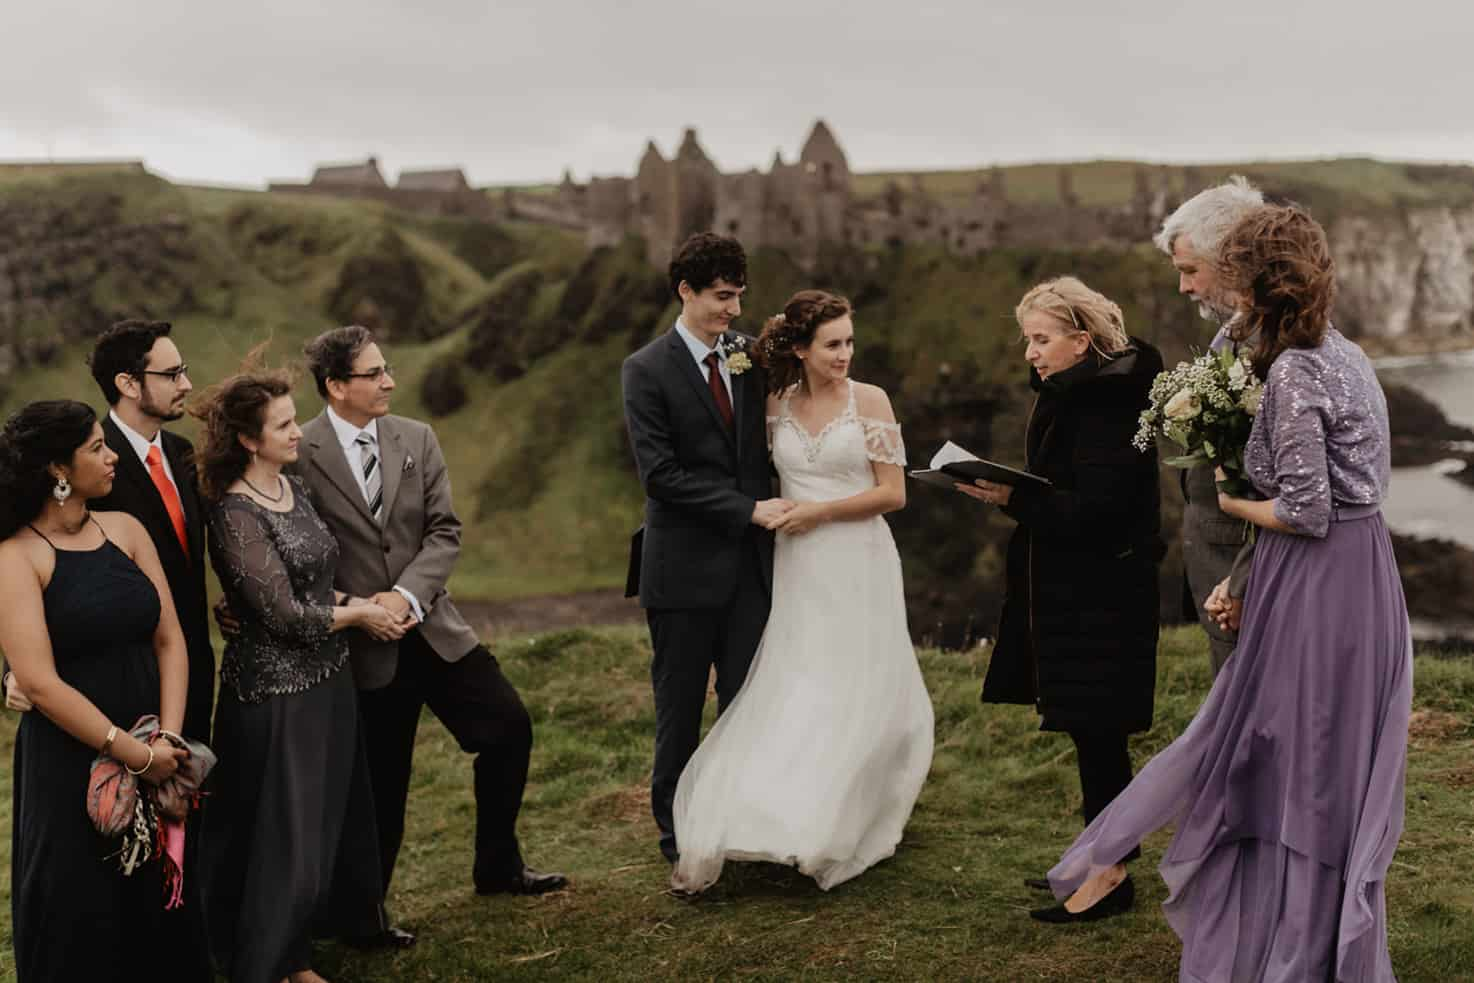 A couple eloping on the cliff tops with their family, over looking Dunluce Castle in Northern Ireland